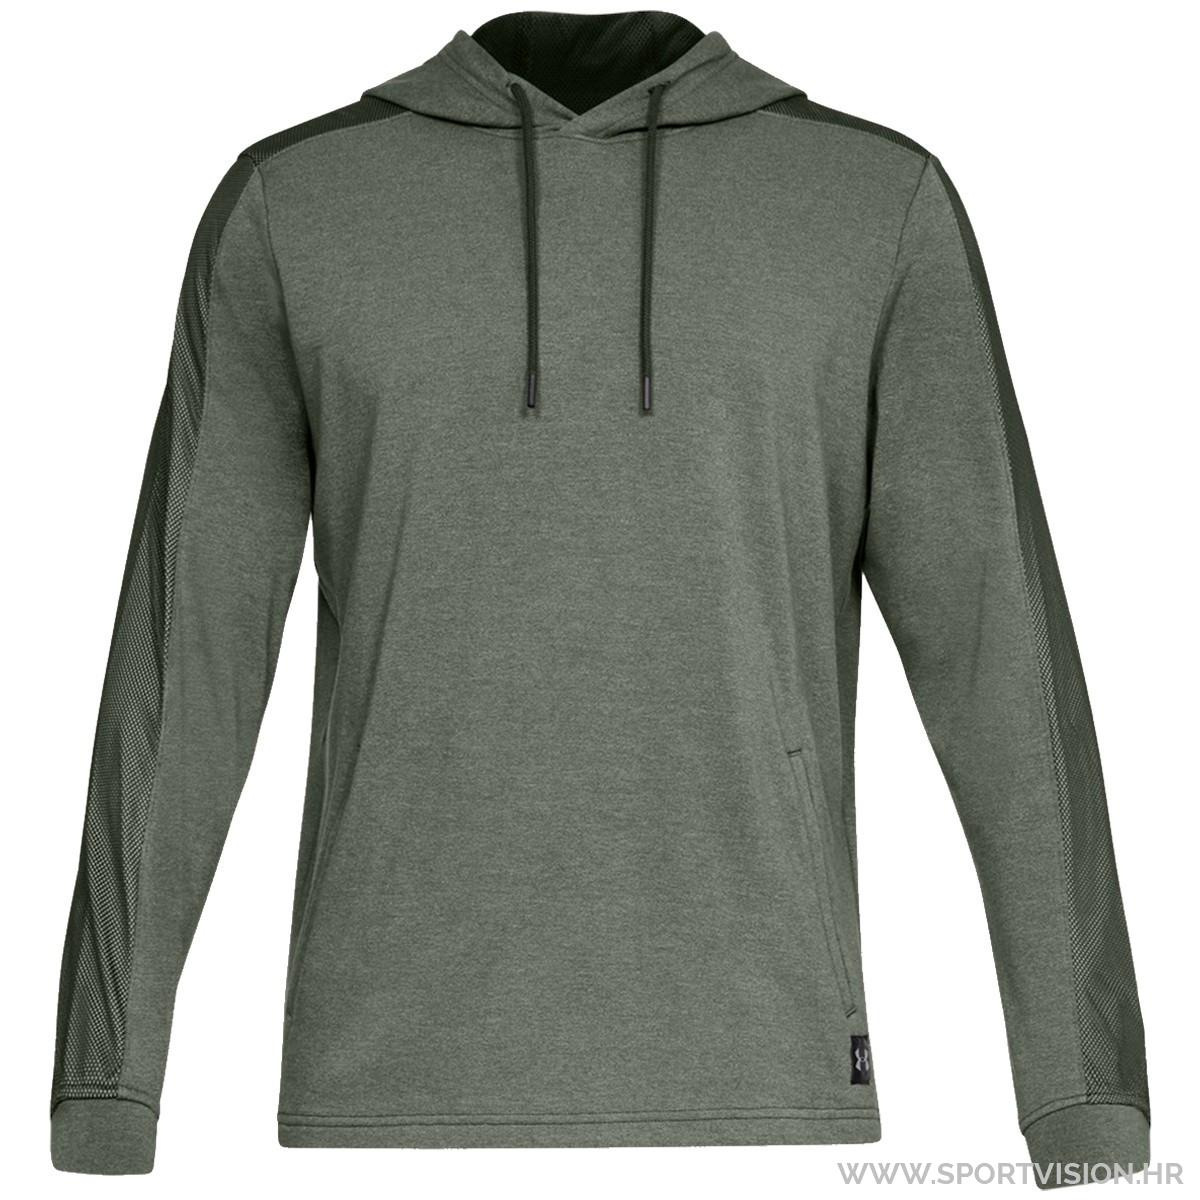 UNDER ARMOUR majica s kapuljačom TB TERRY PO HOODIE